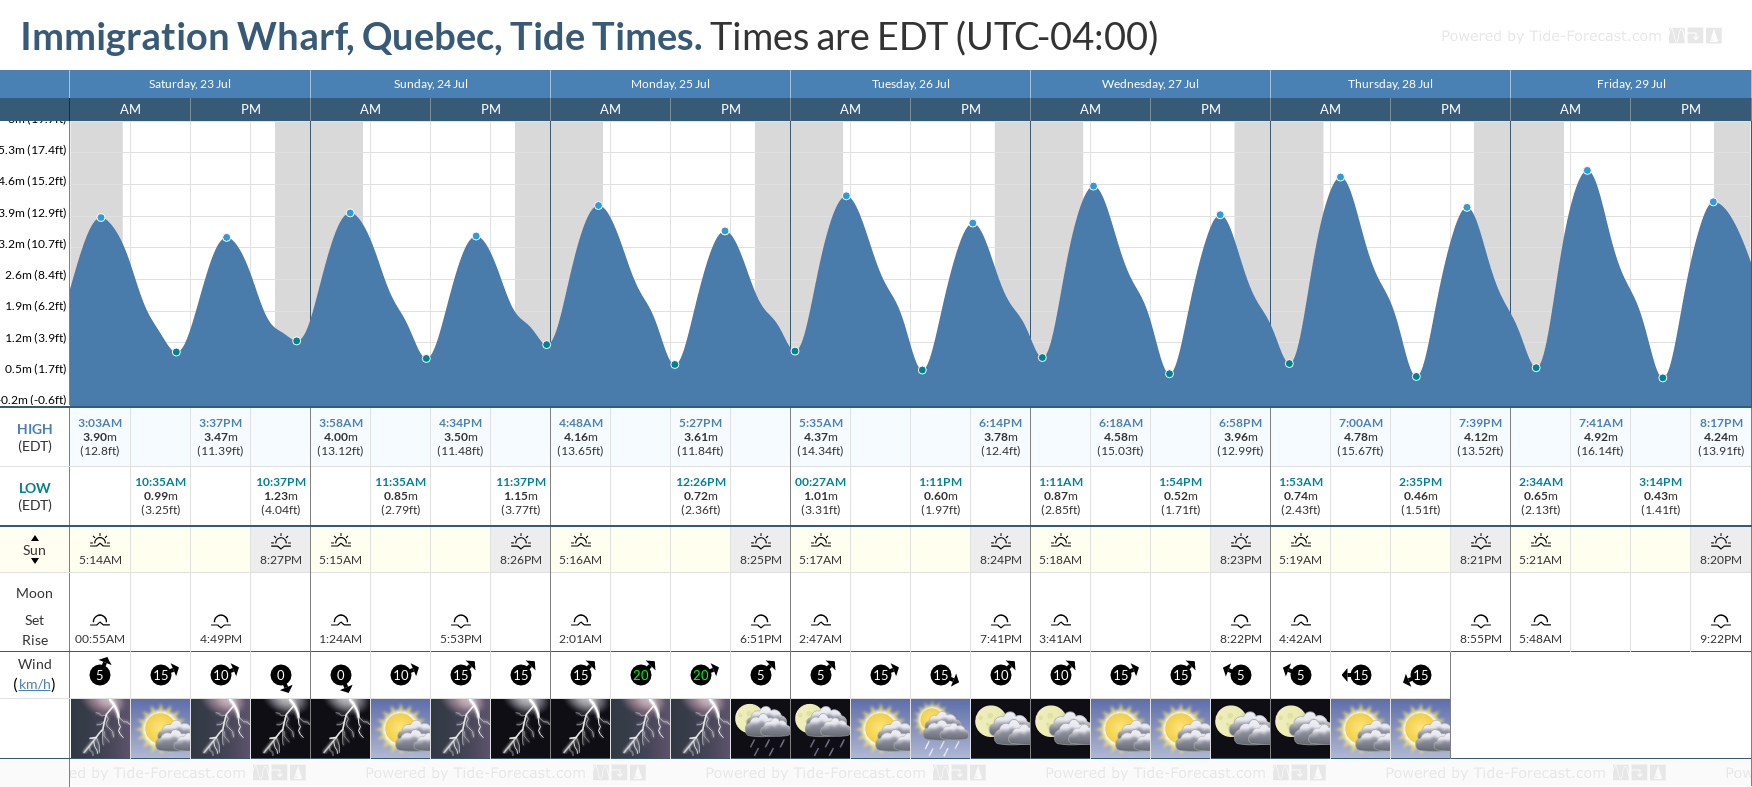 Immigration Wharf, Quebec Tide Chart including high and low tide tide times for the next 7 days